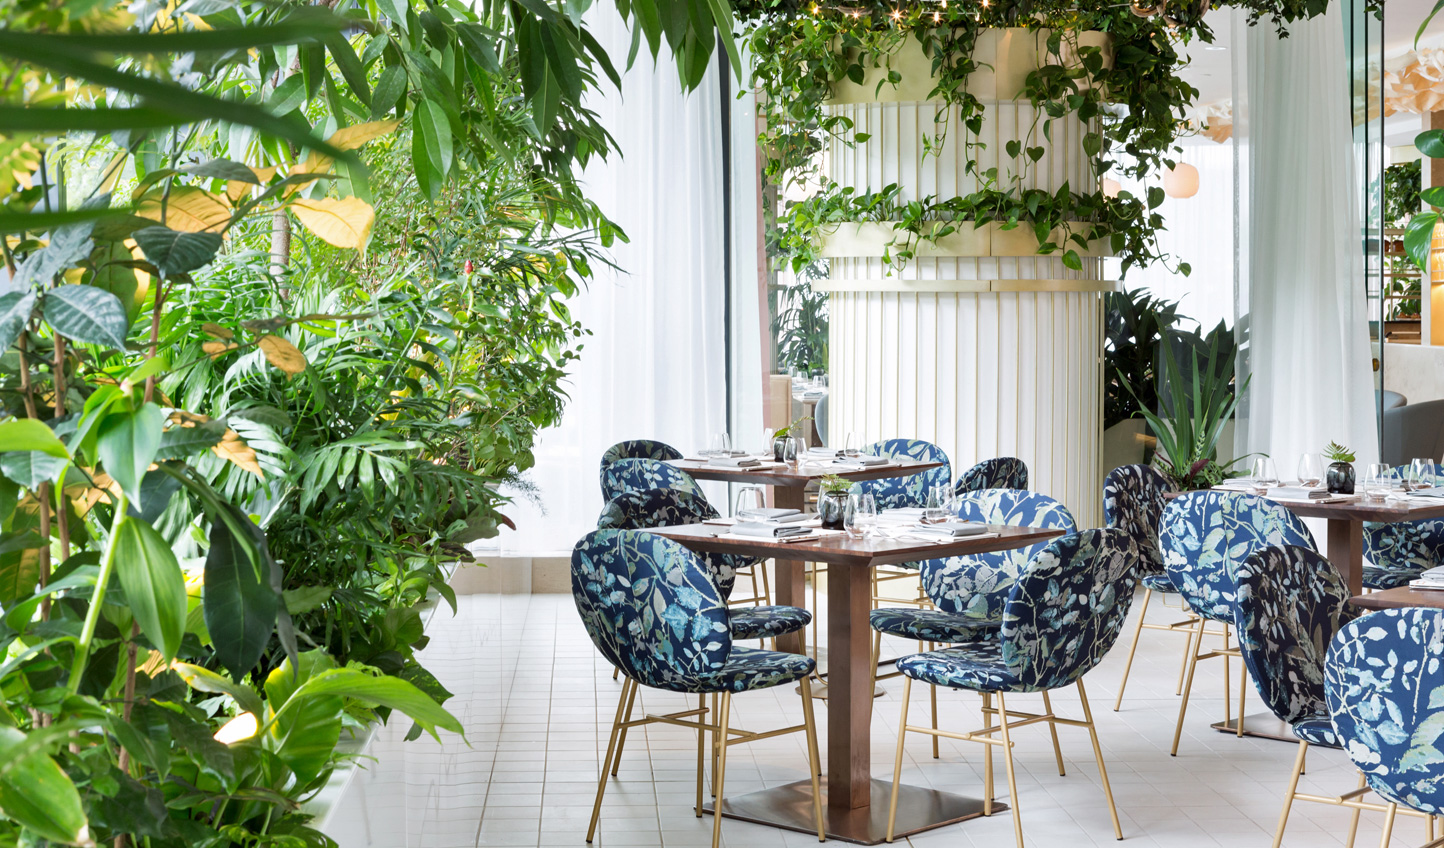 Discover a urban oasis in The Botanist